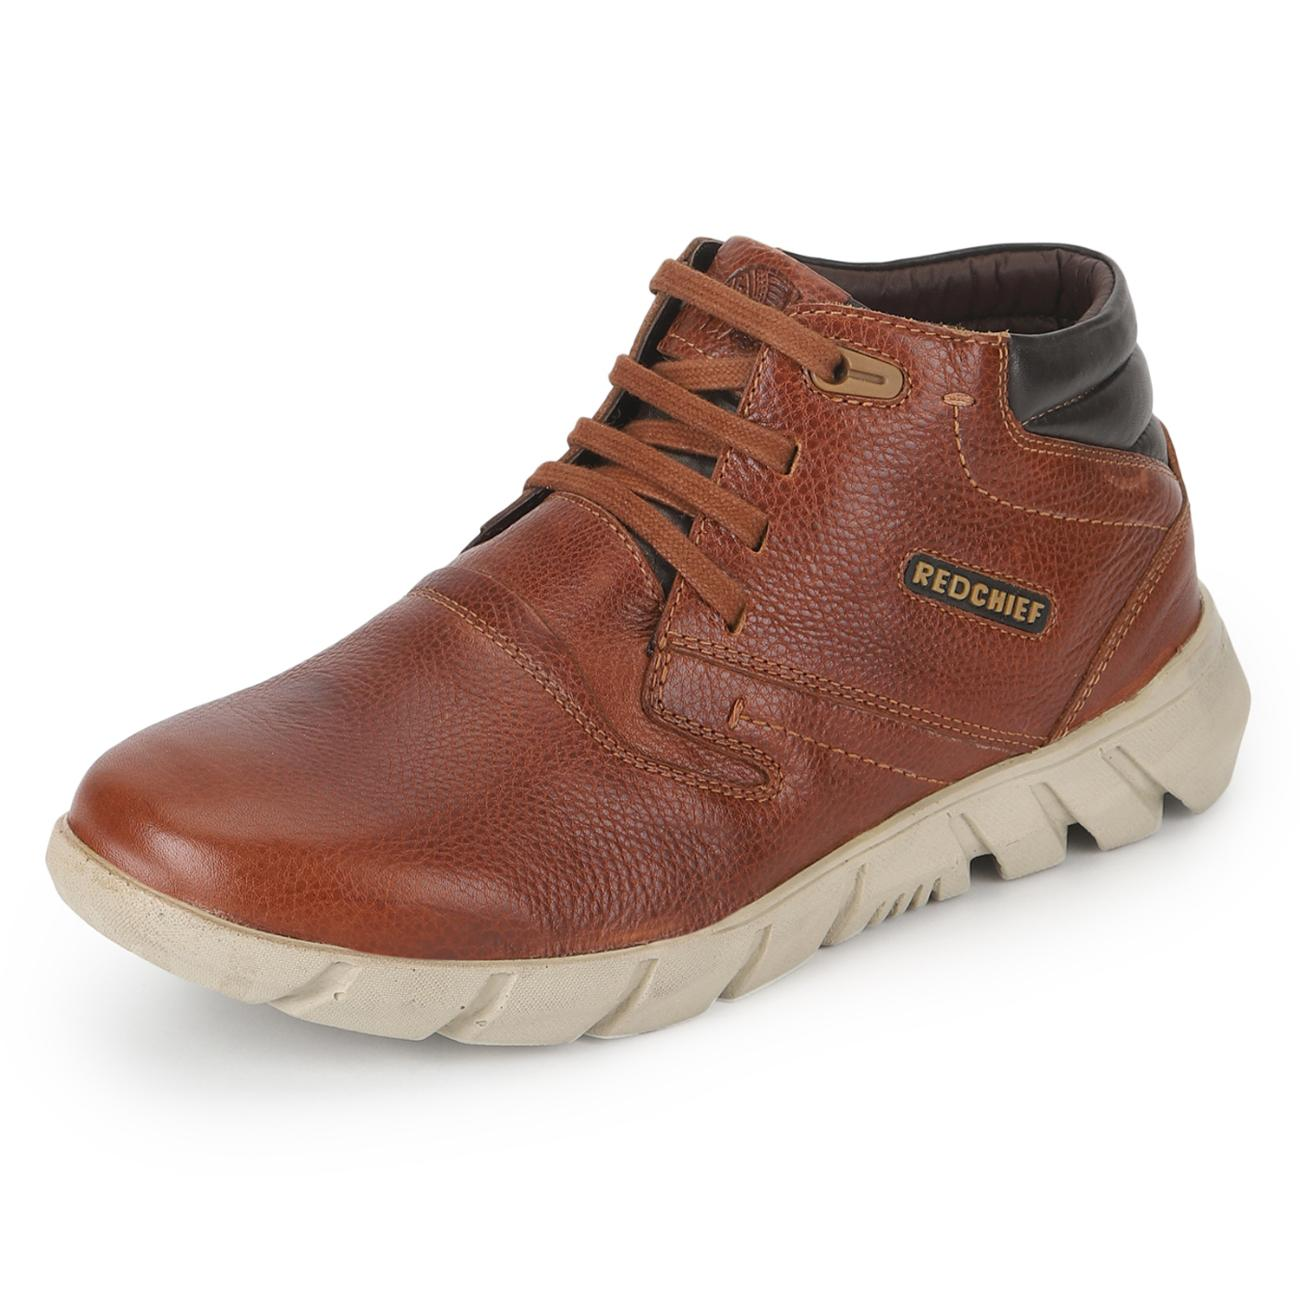 tan casual derby shoes from behind